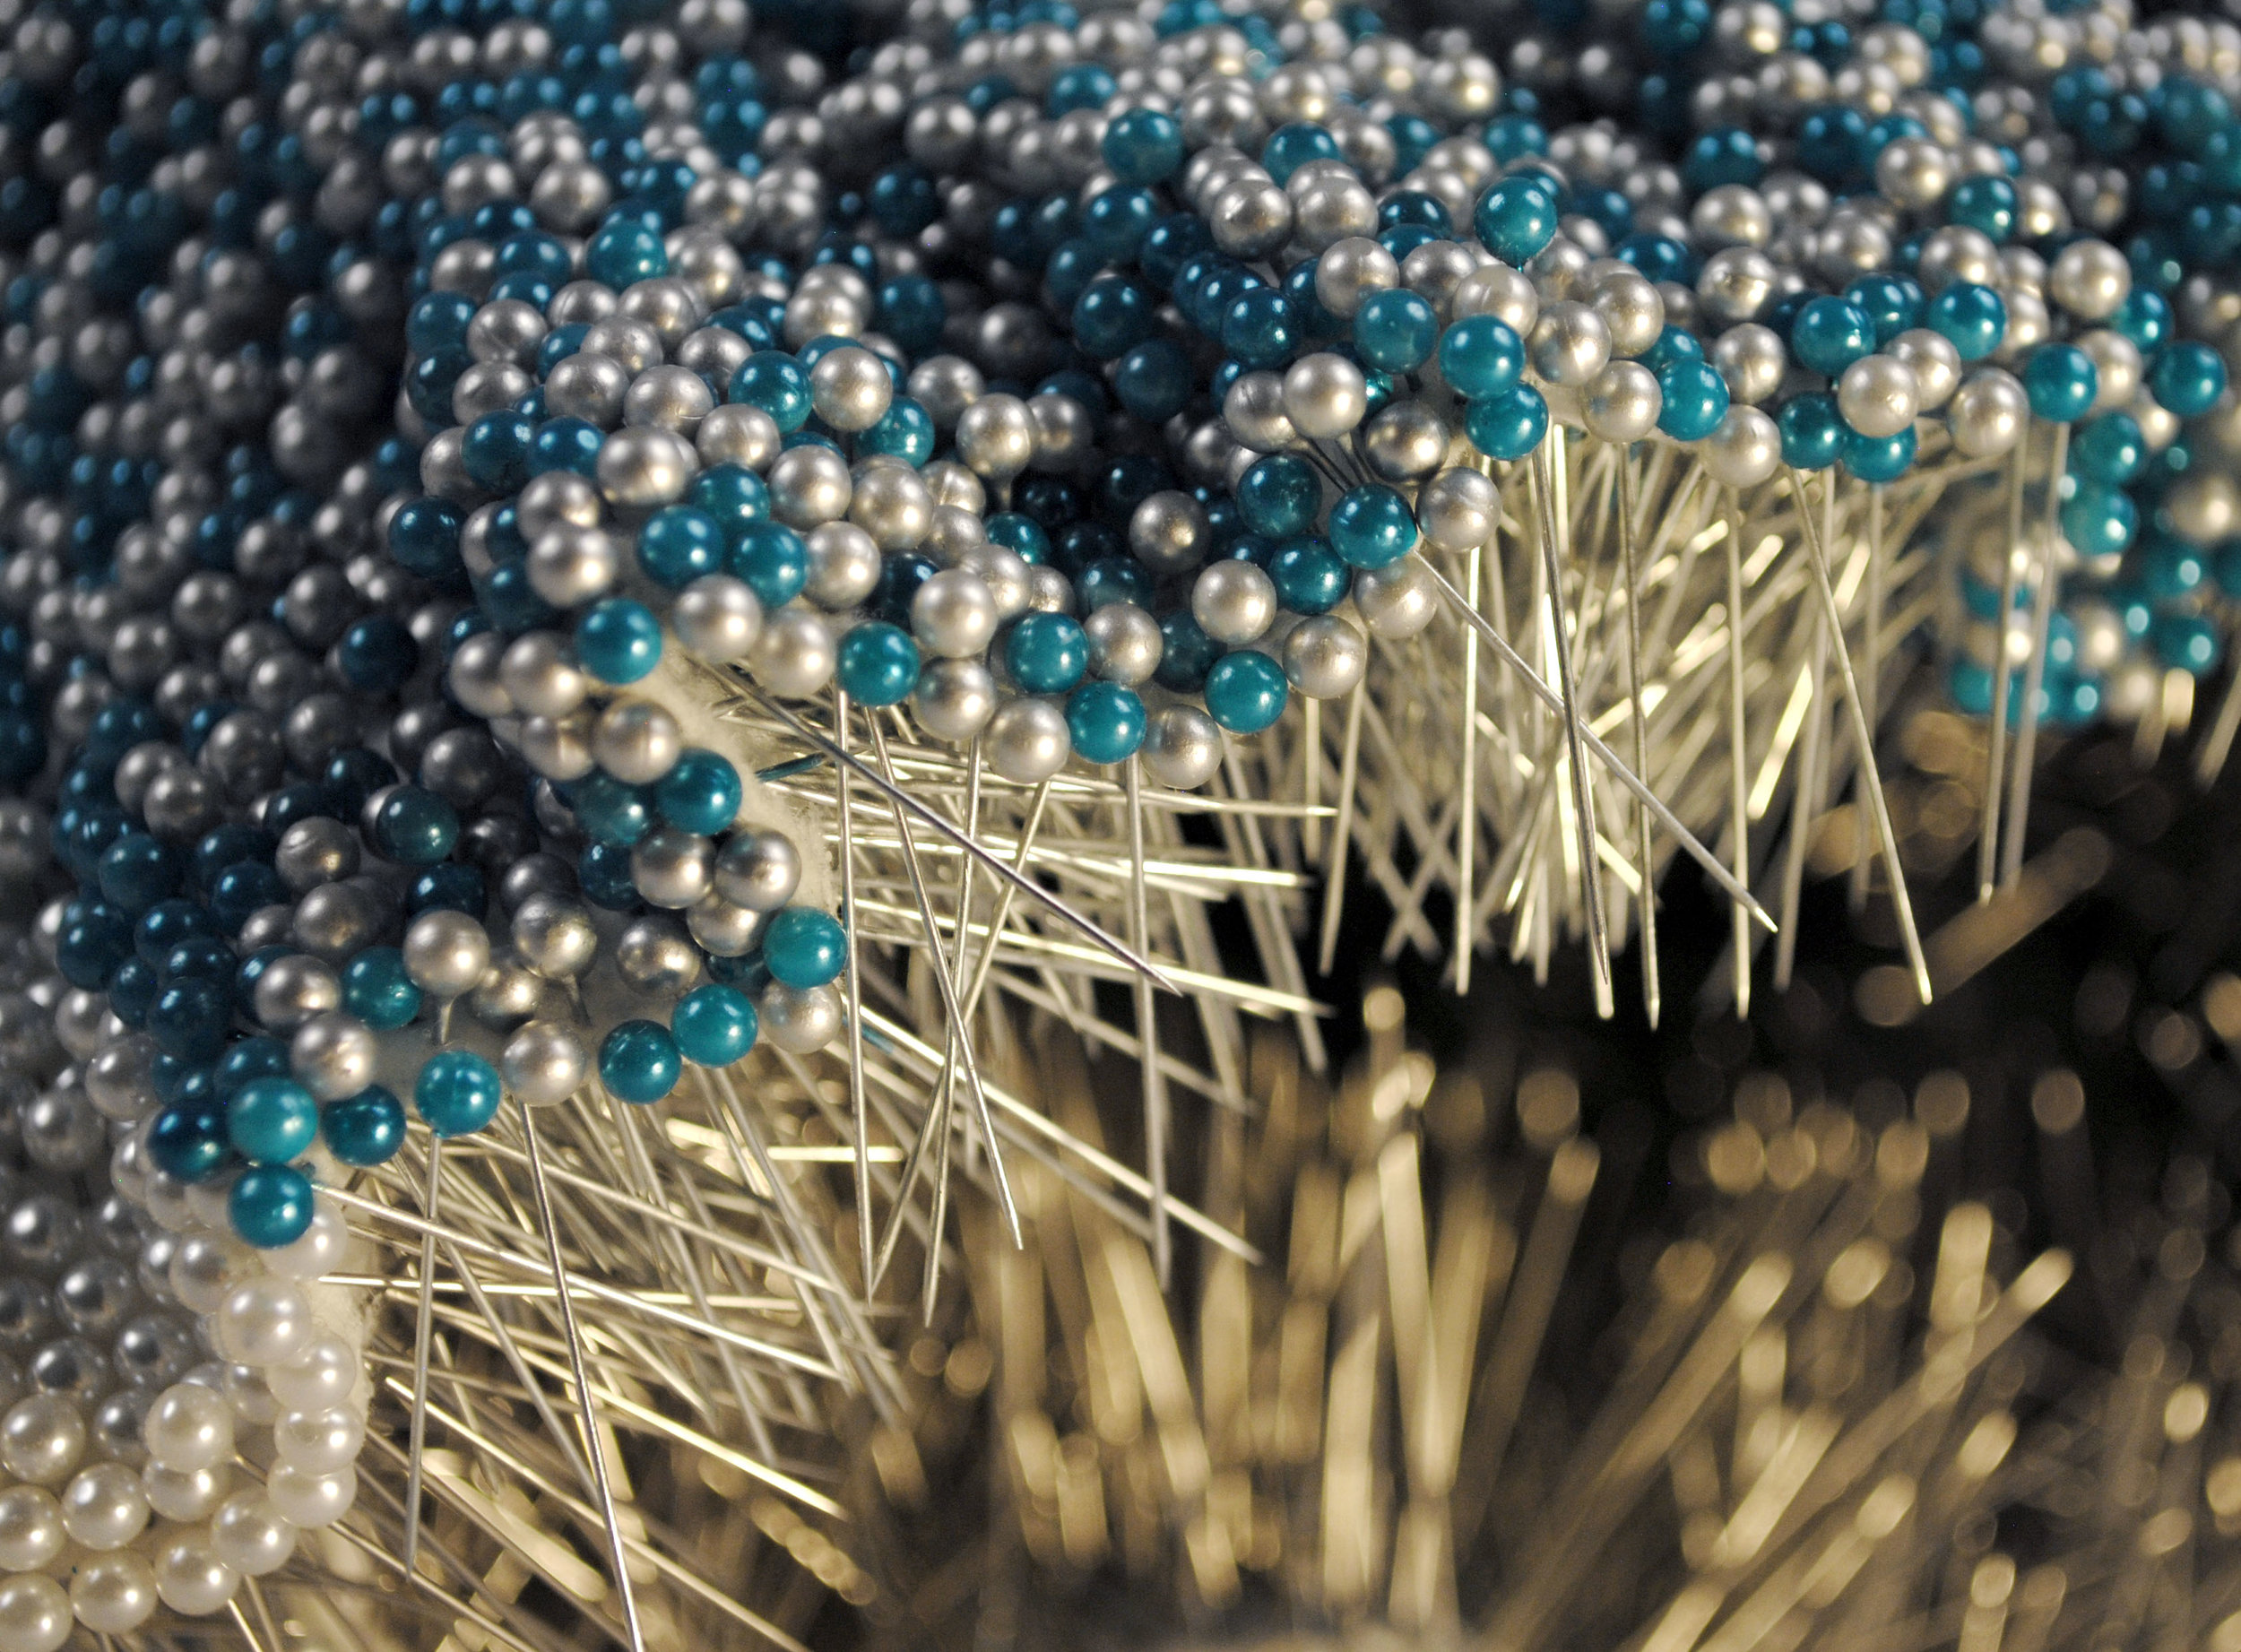 Pantaloncini: Work No. 069 (Emma)(detail)  52,692 pearl corsage pins and colored dress pins, fabric, steel, 28 x 38 x 17 inches, 2017